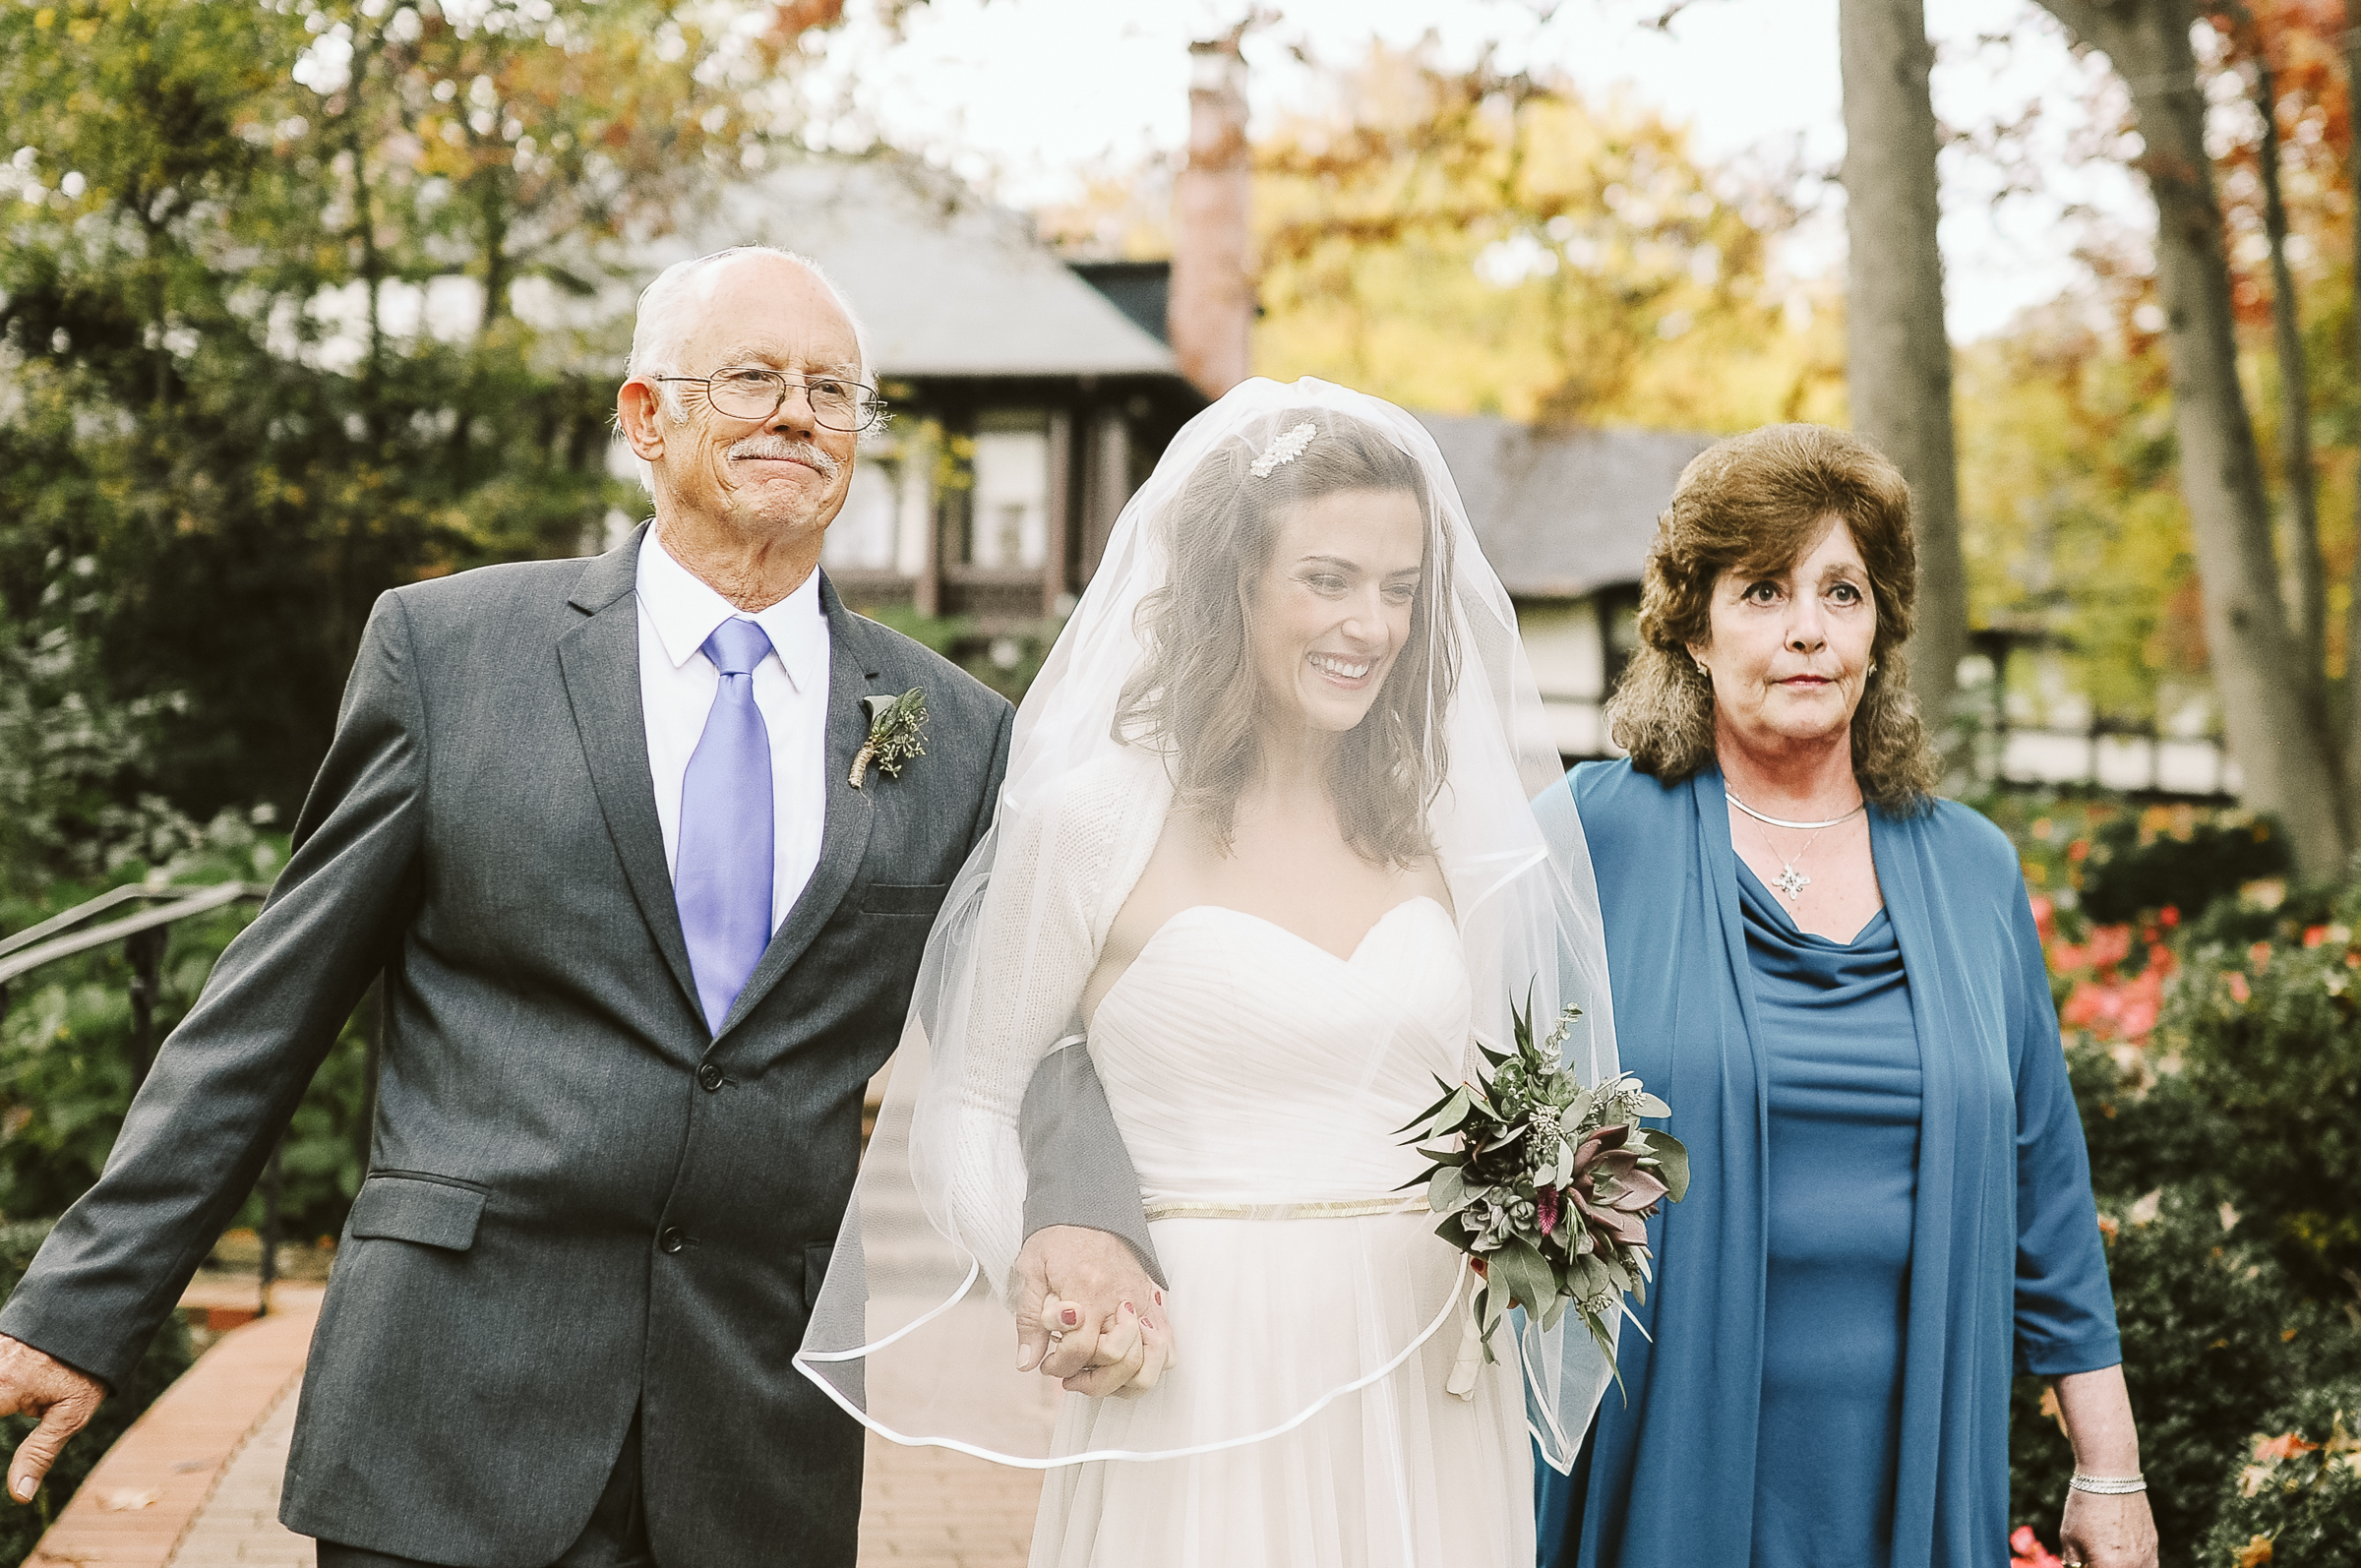 Jen and Drew's Wedding Edited 2019 web-51.jpg